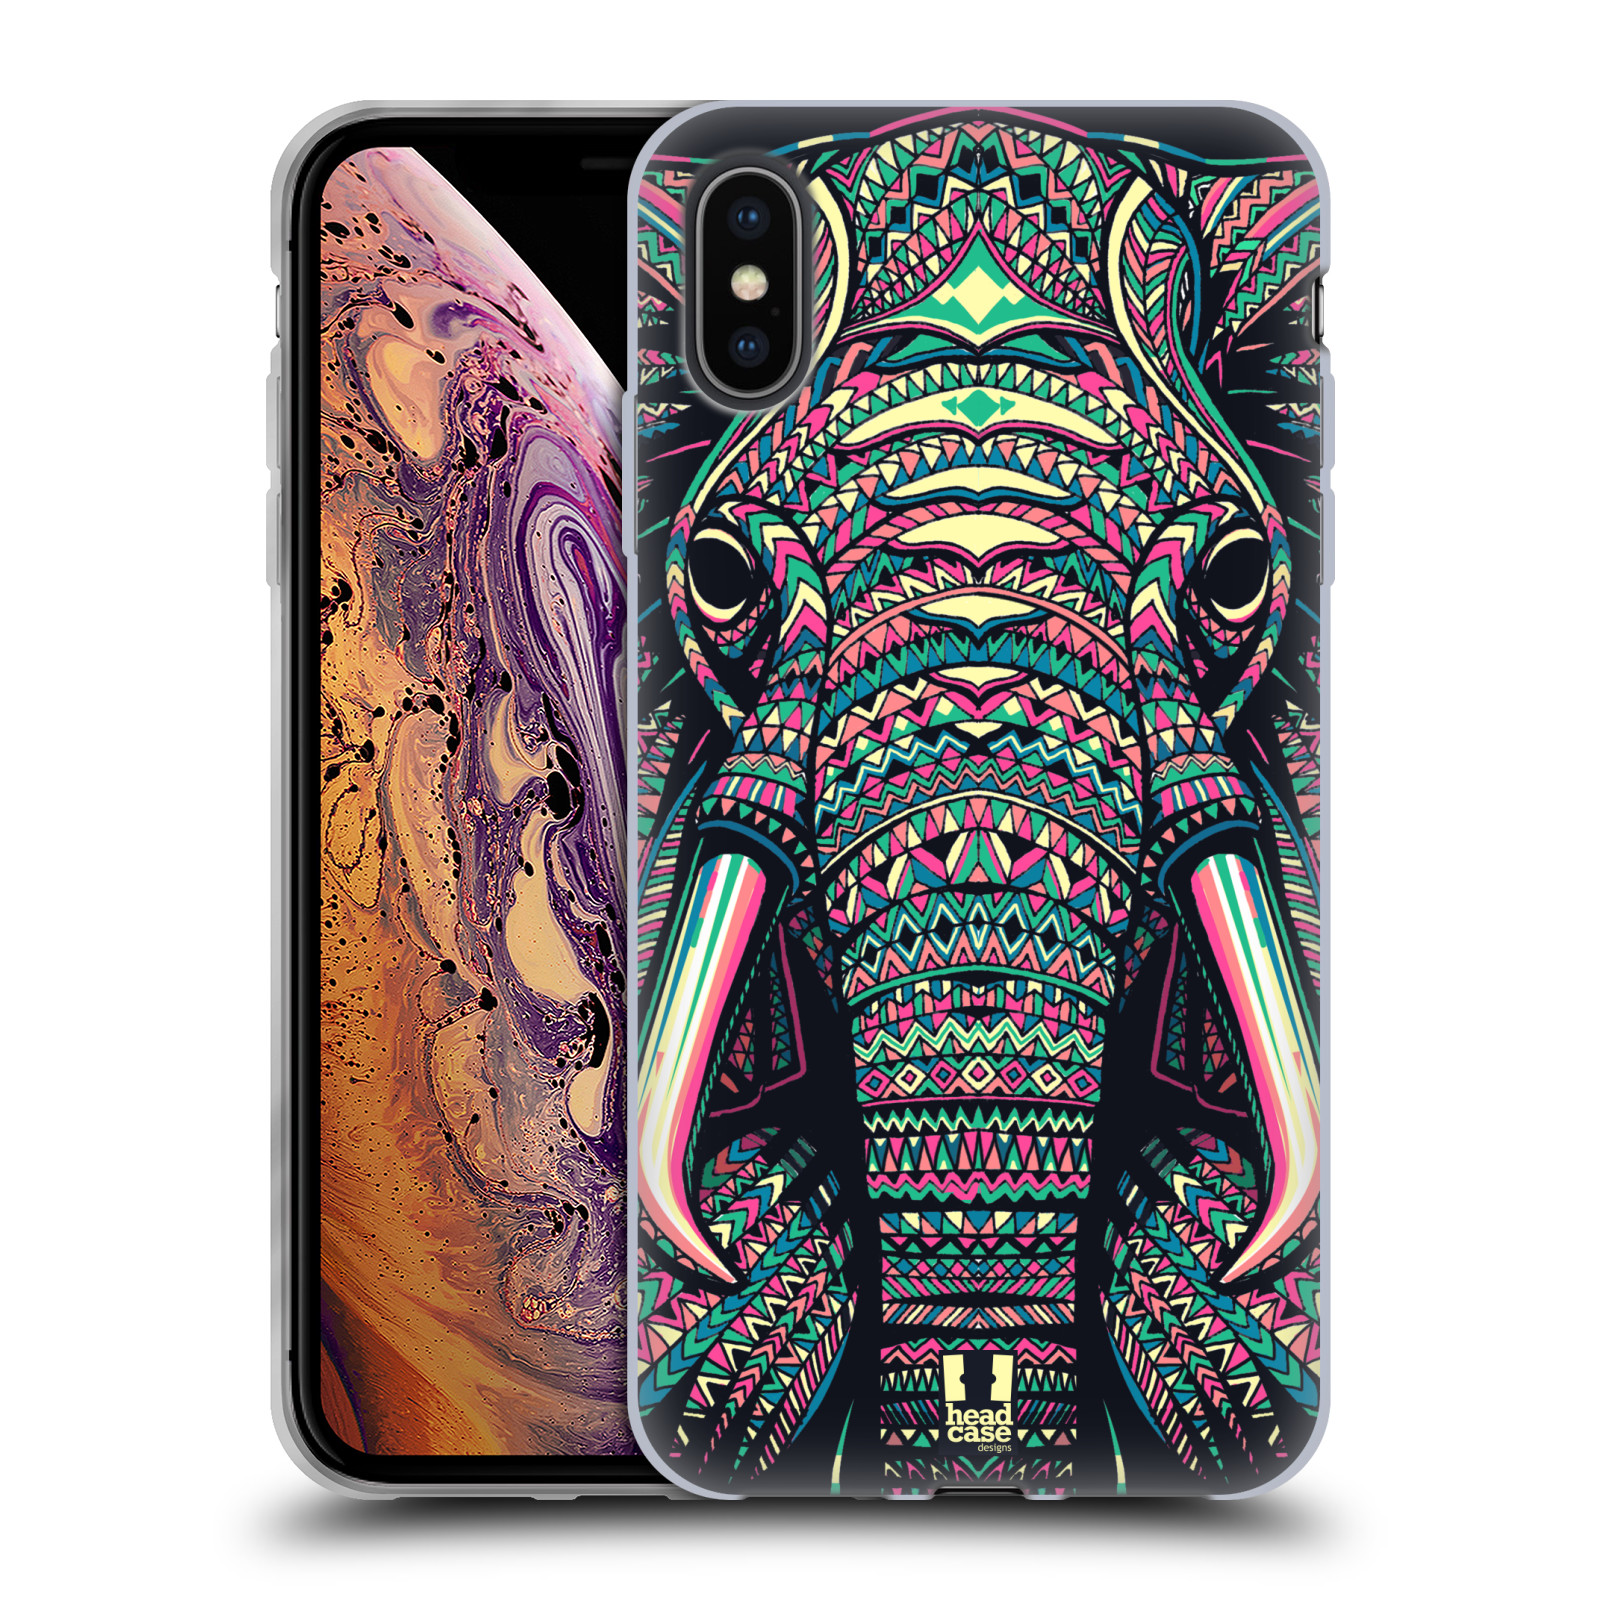 Silikonové pouzdro na mobil Apple iPhone XS Max - Head Case - AZTEC SLON 5e767b3eb0c